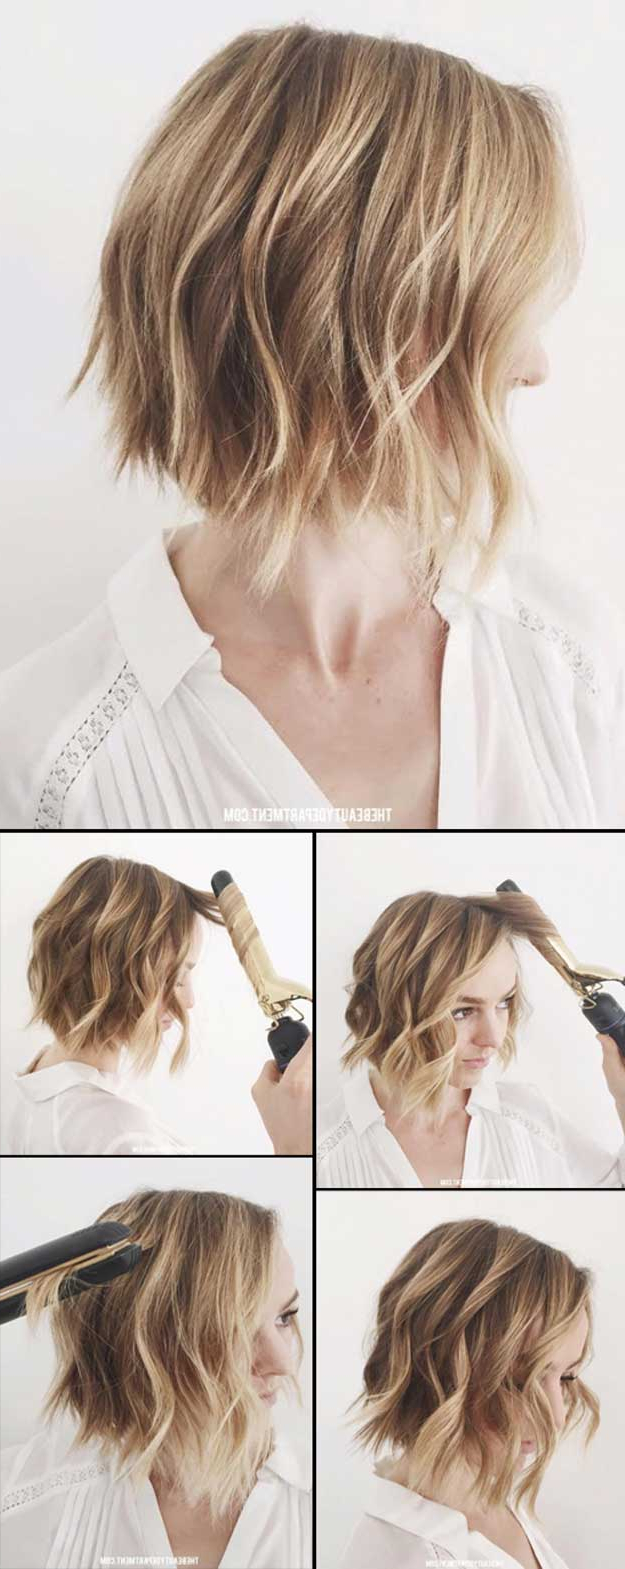 33 Best Hairstyles For Teens – The Goddess Pertaining To Teenage Girl Short Hairstyles (View 9 of 25)